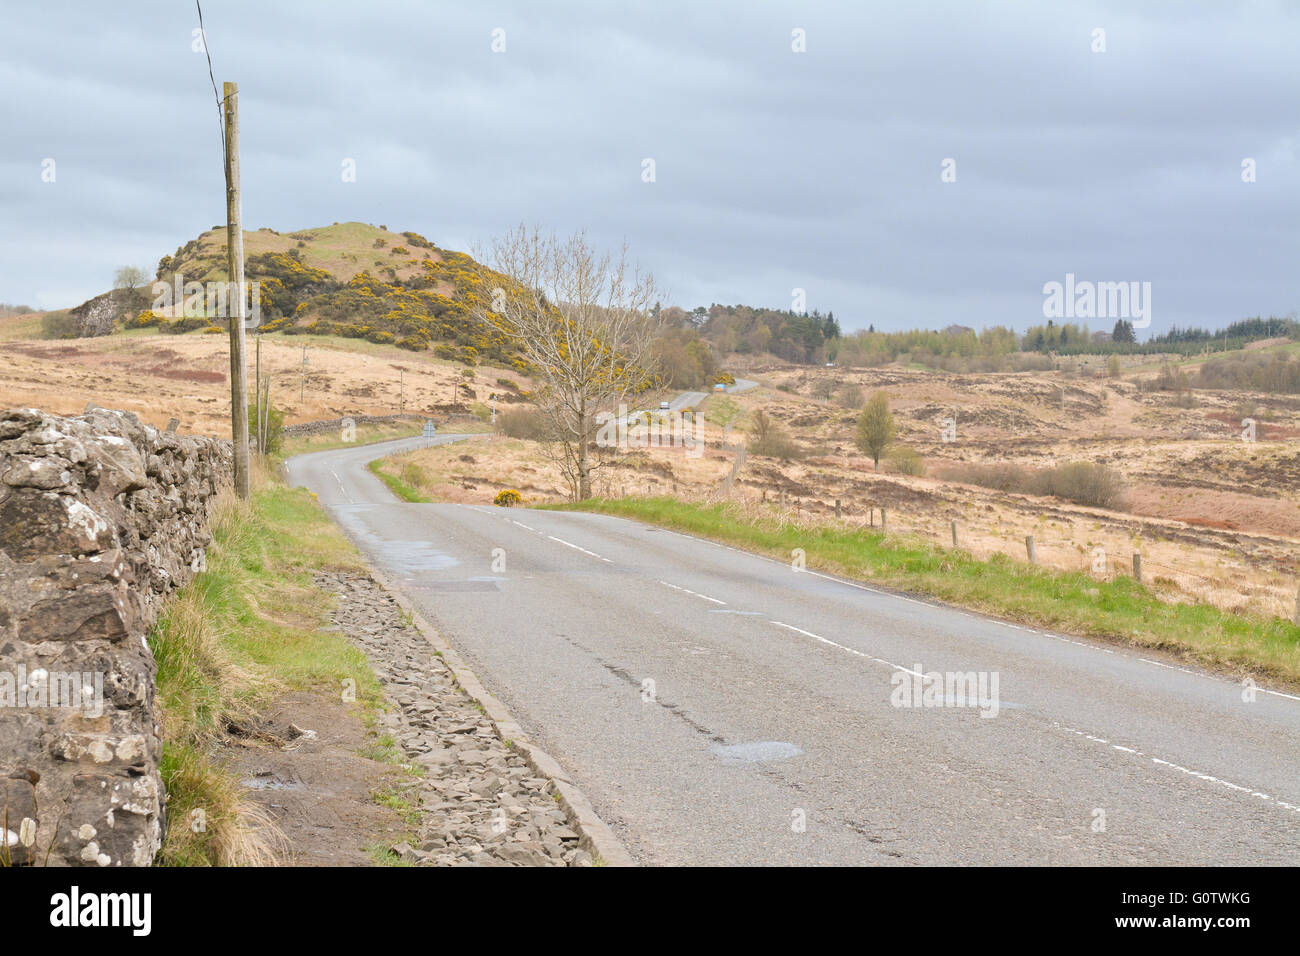 Notoriously dangerous road in Scotland - Stockiemuir Road (A809) between Bearsden and Croftamie, Glasgow, East Dunbartonshire, - Stock Image